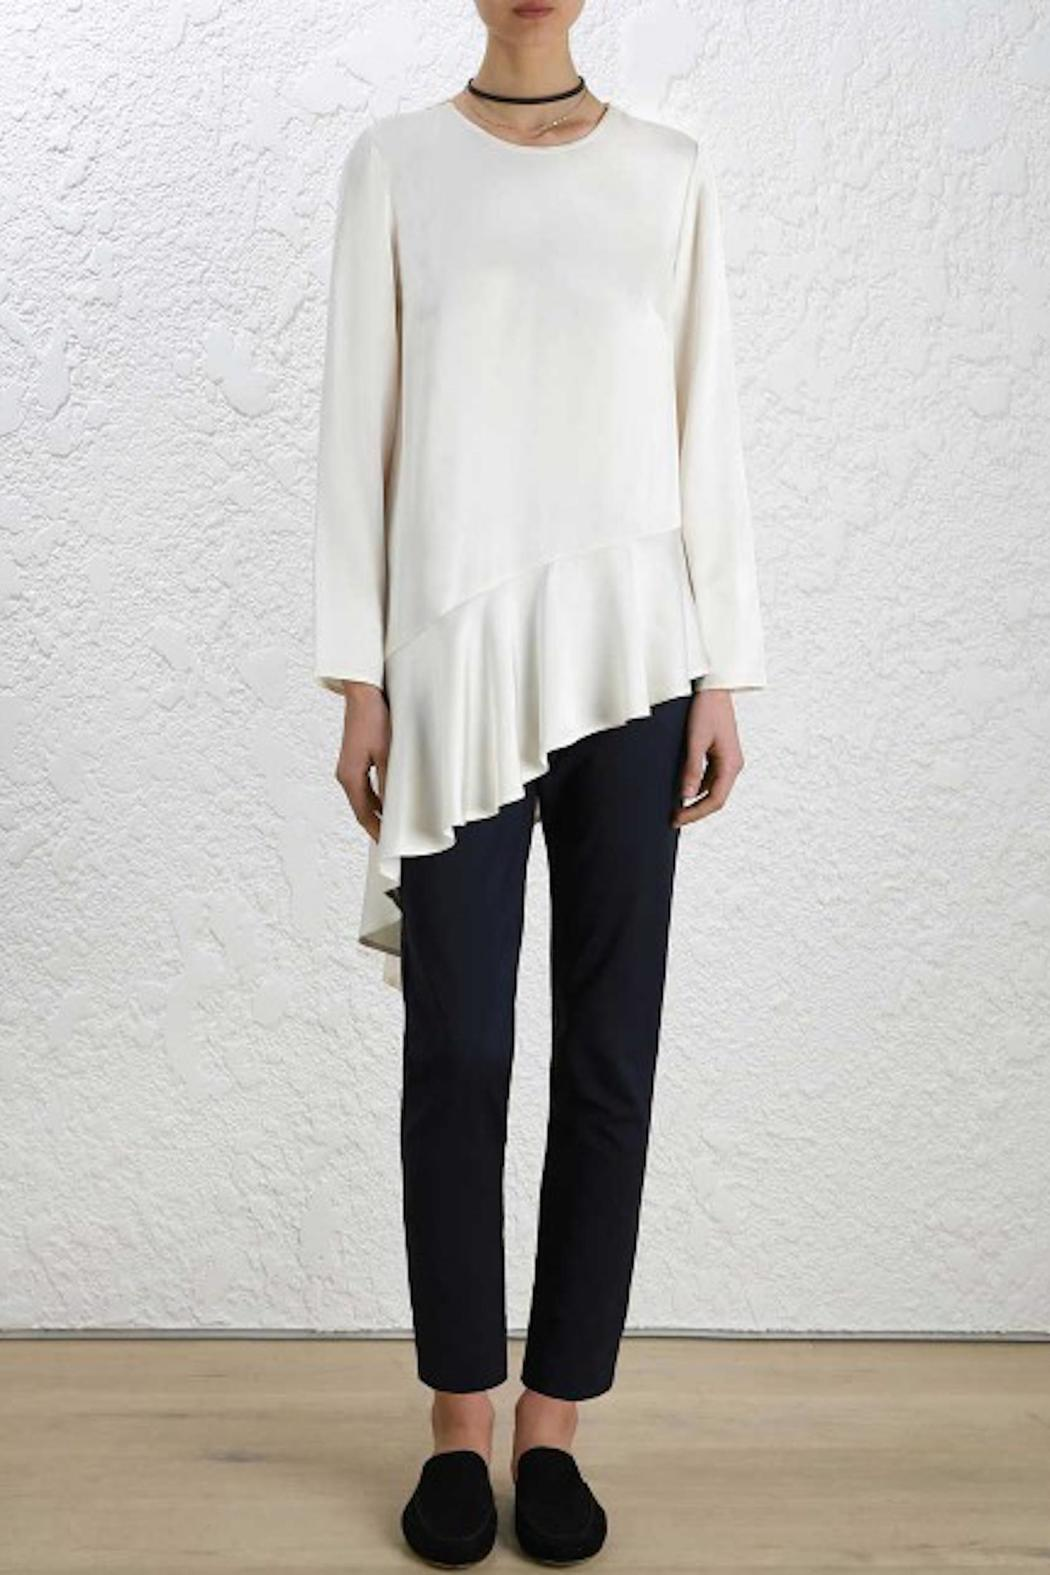 0db5449d9db2 Zimmermann Lavish Asymmetric Top from New South Wales by Cupid ...